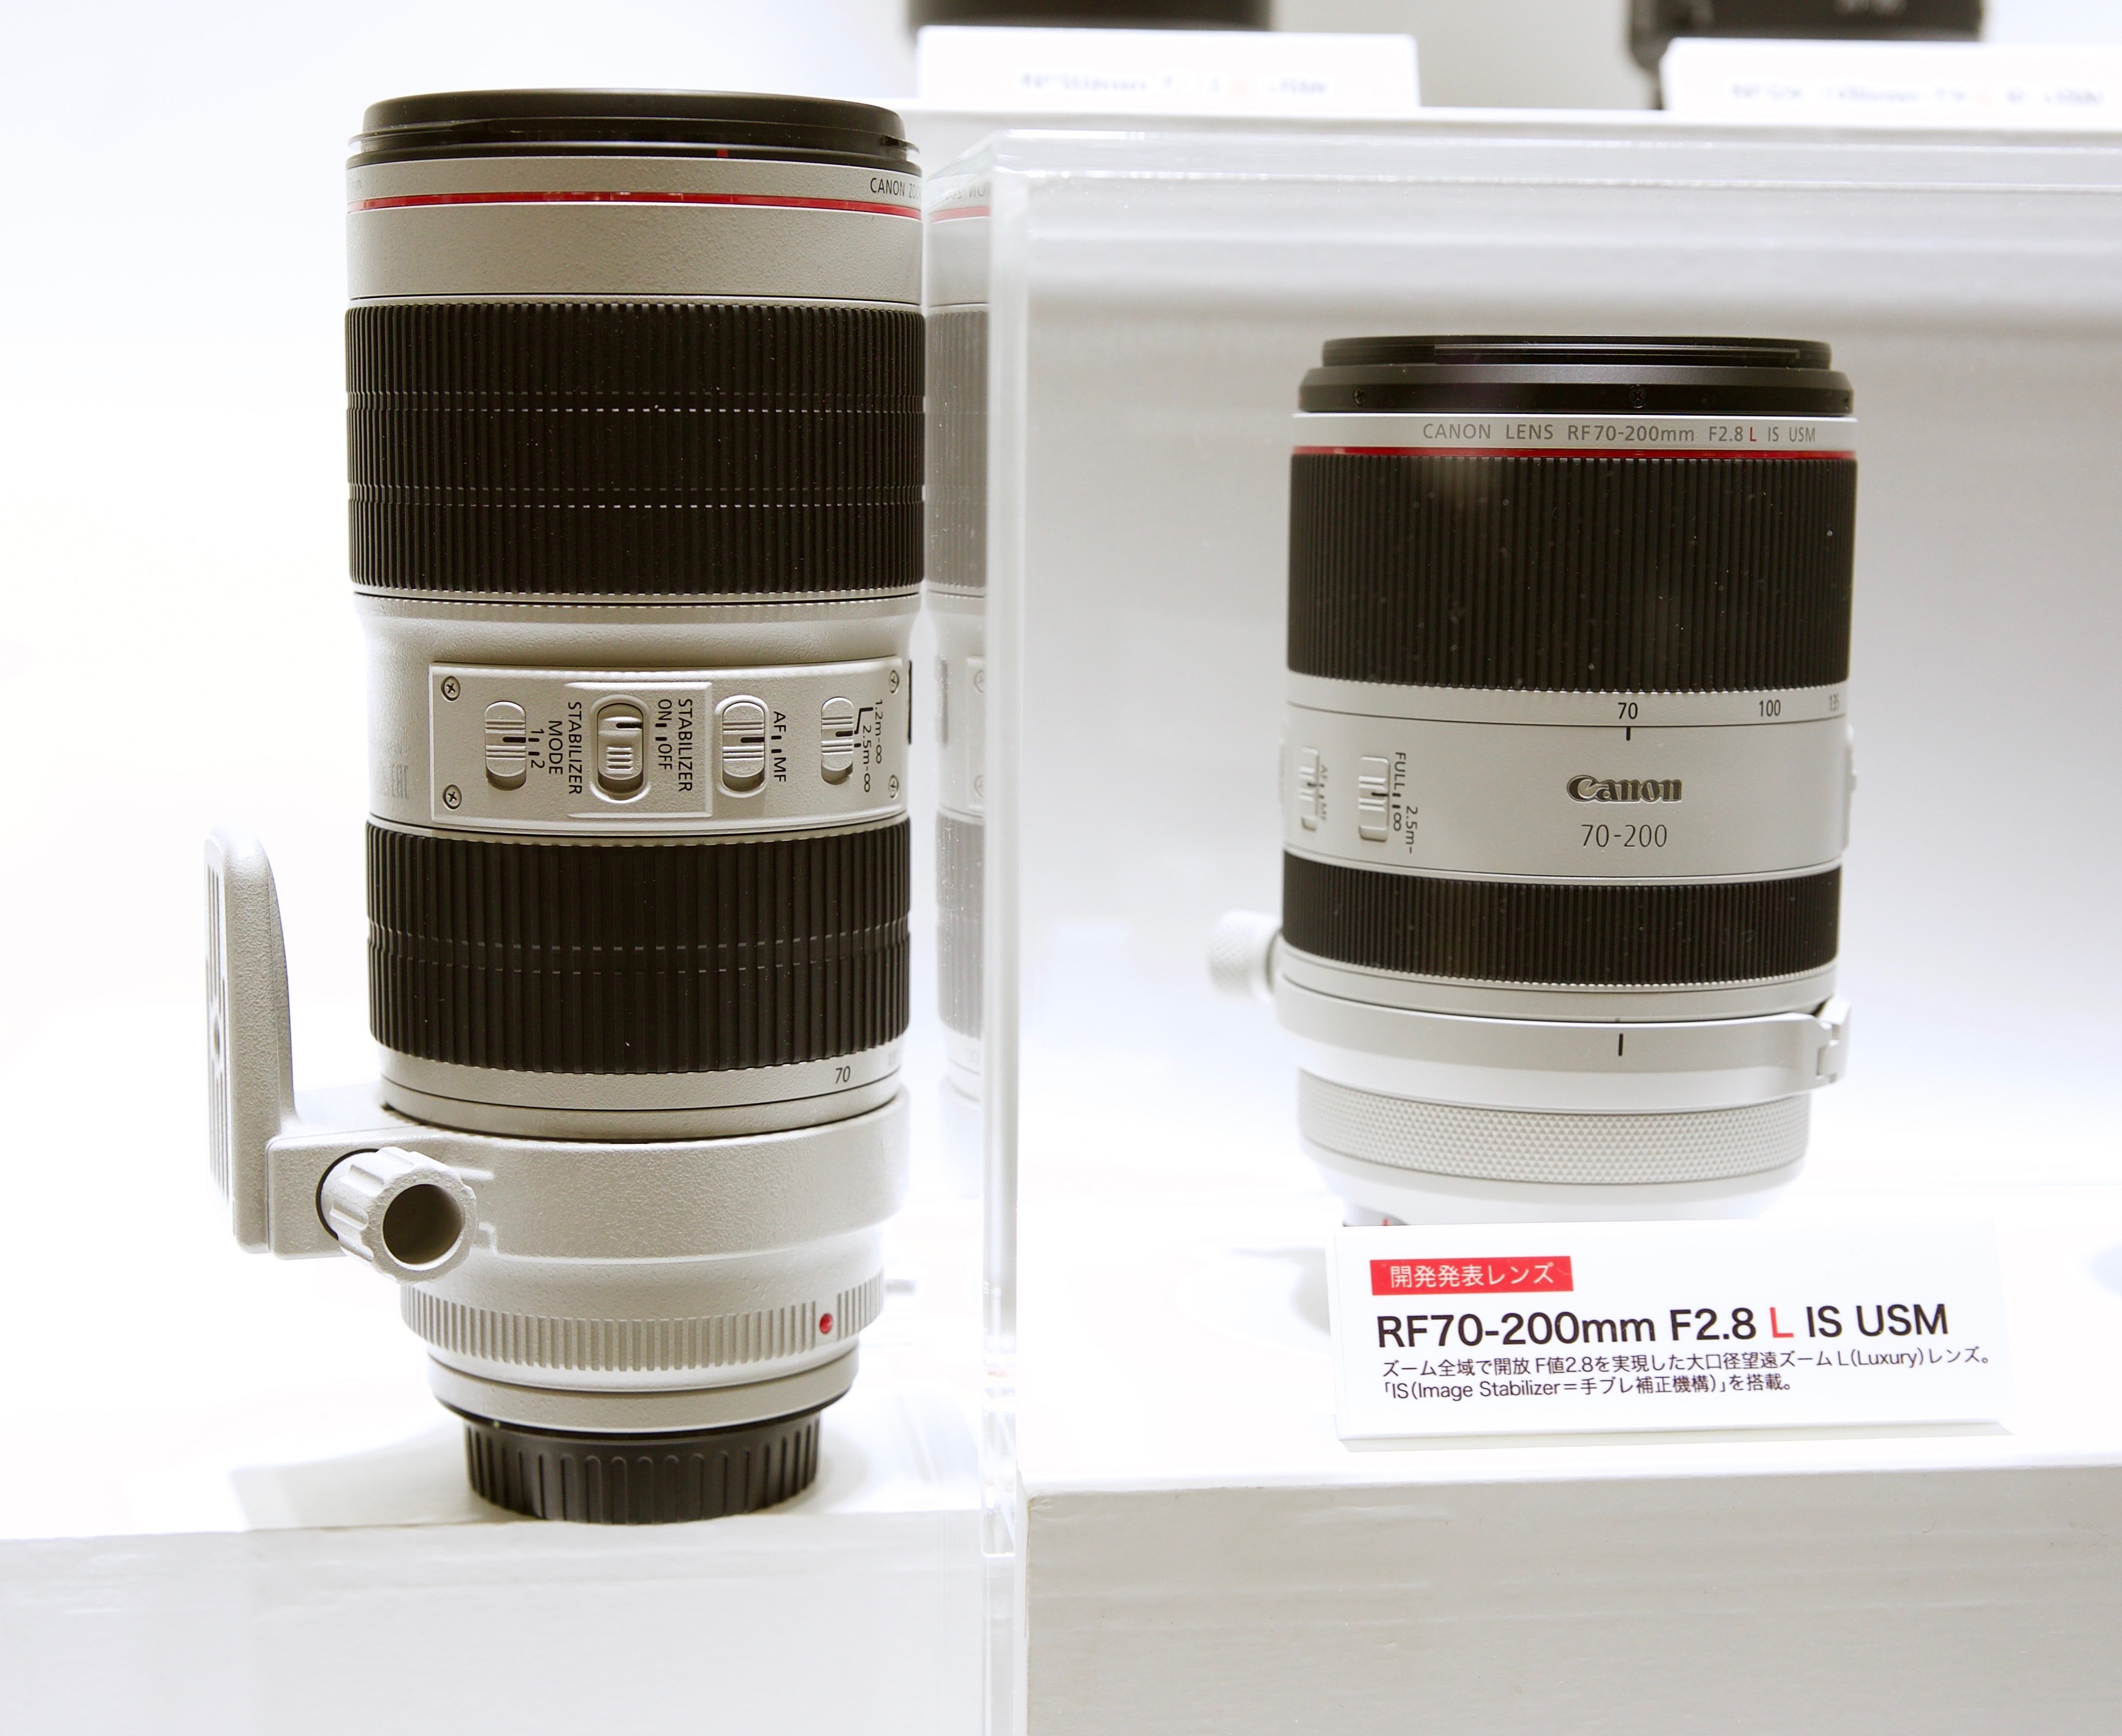 New Canon R mount lenses shown at CP+ 2019